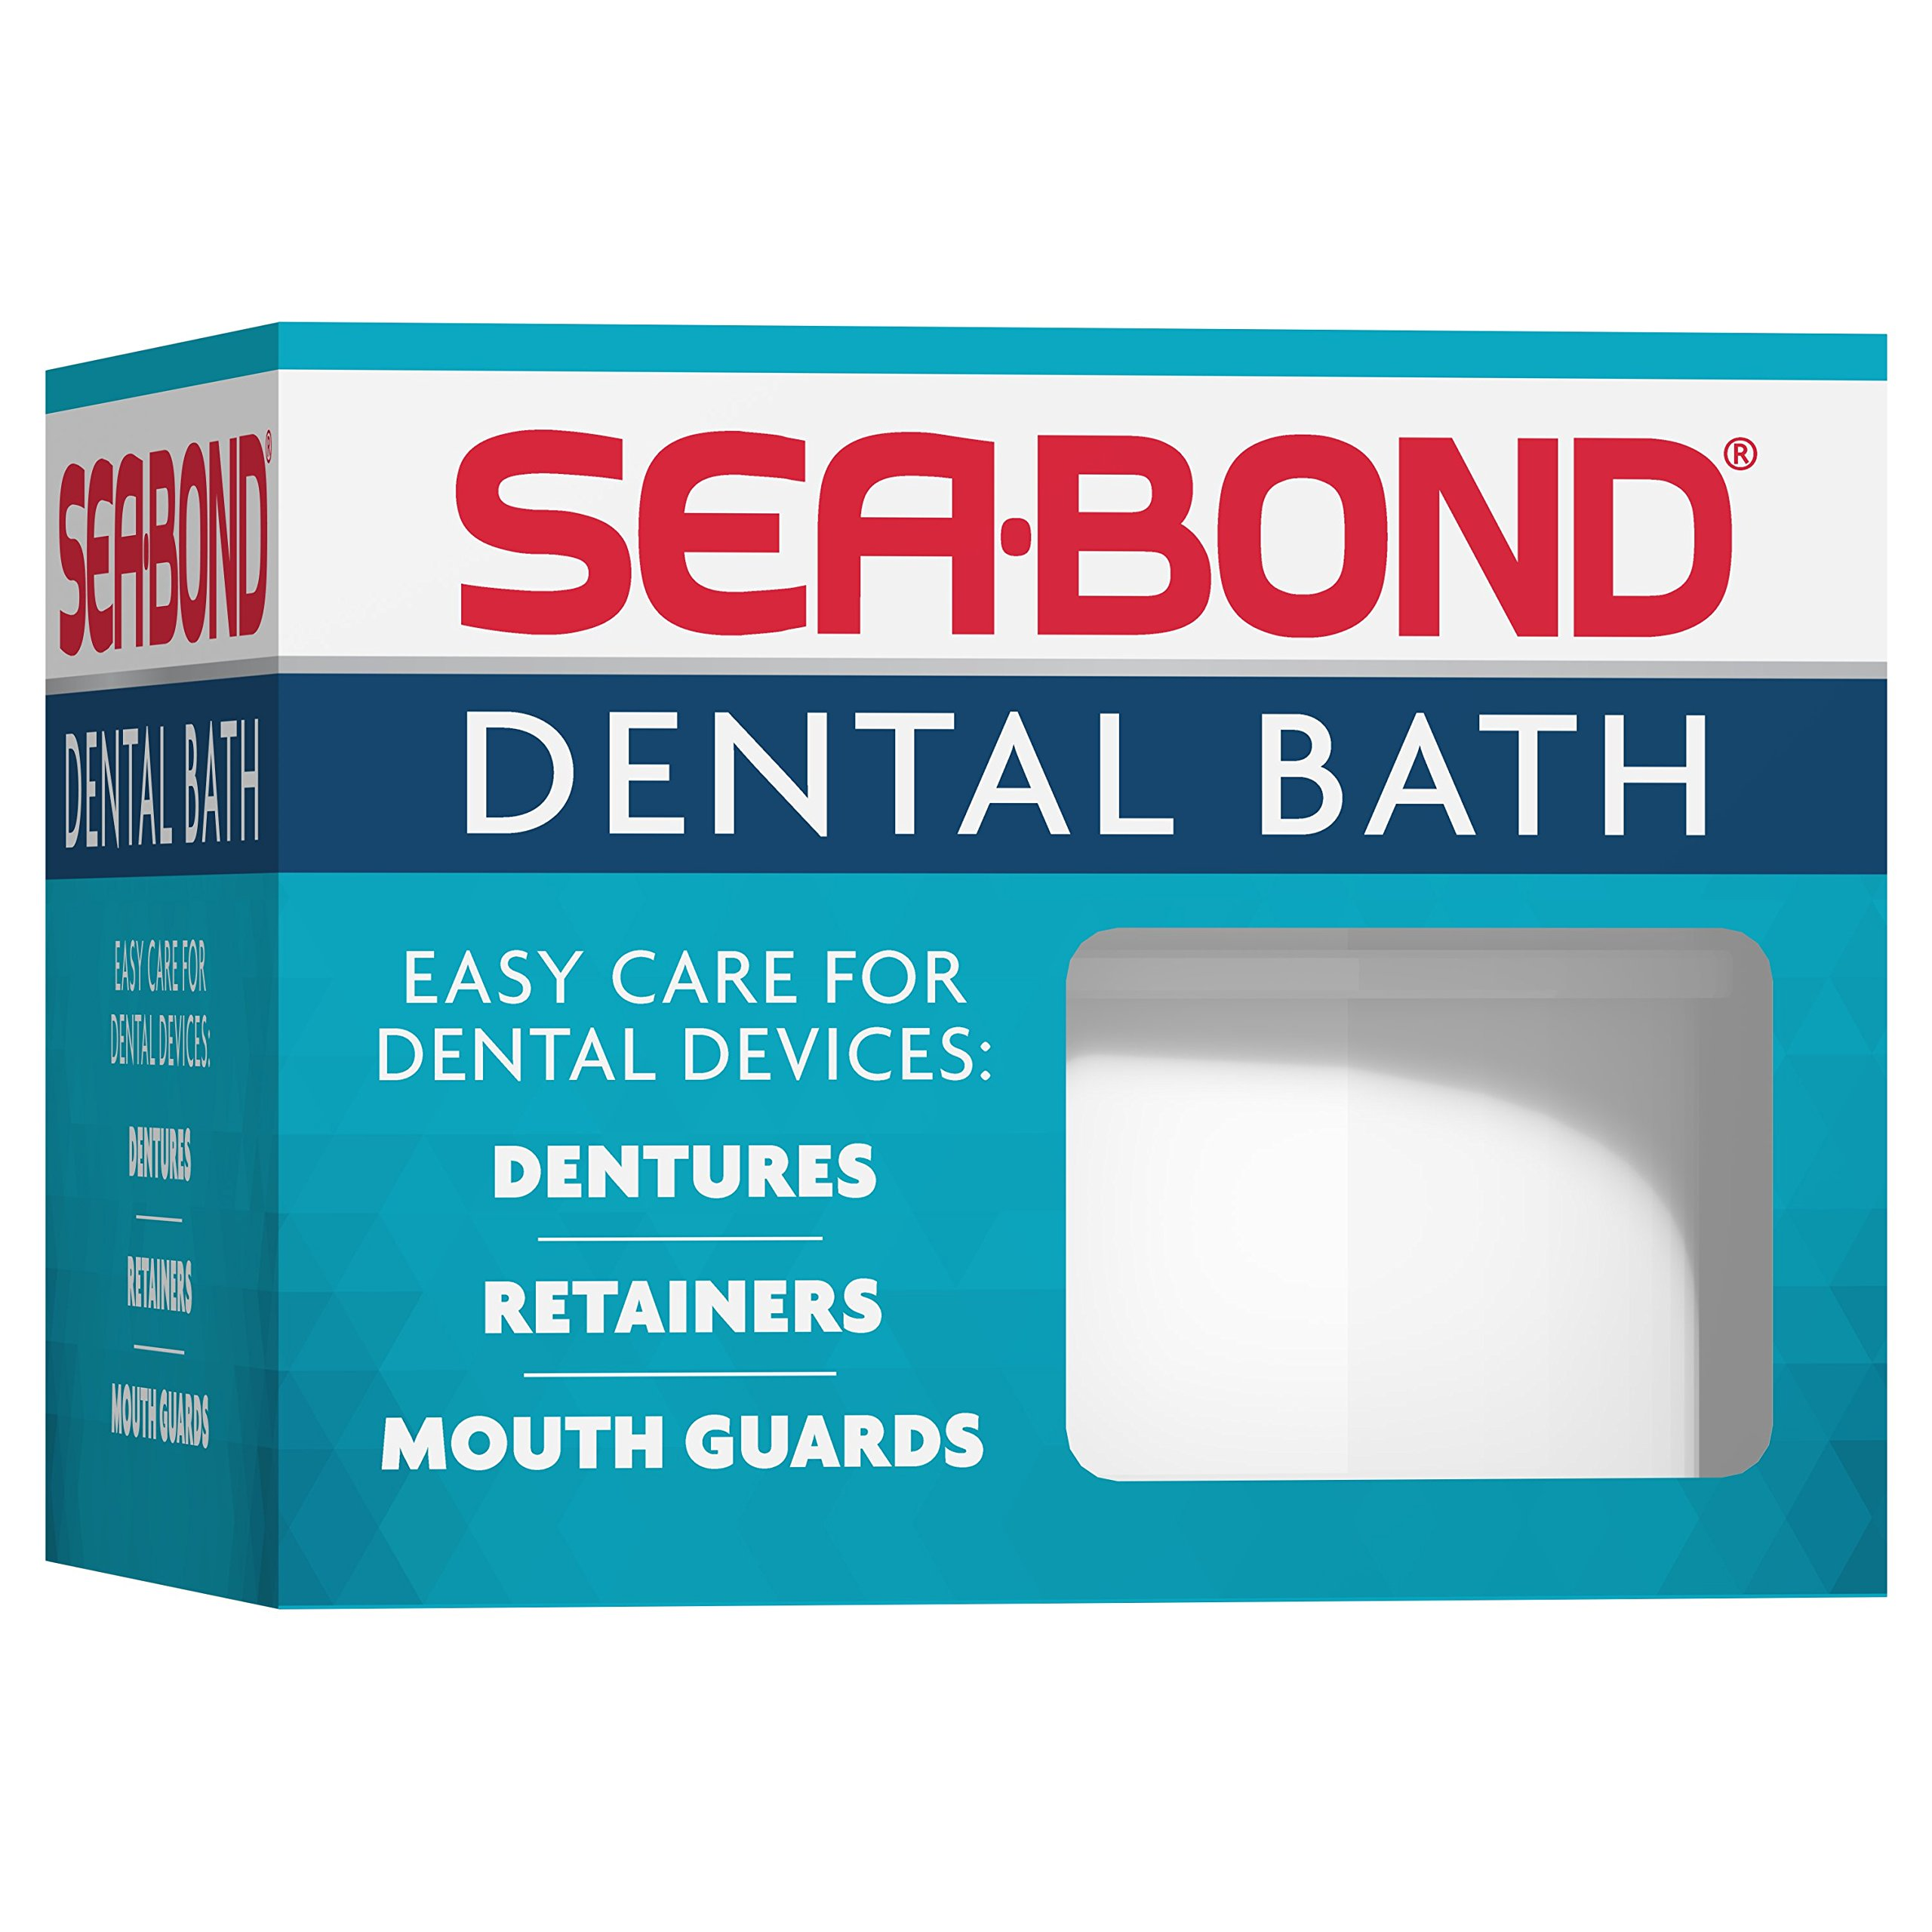 Sea Bond Daily Cleaning Denture, Mouthguard, and Retainer Bath